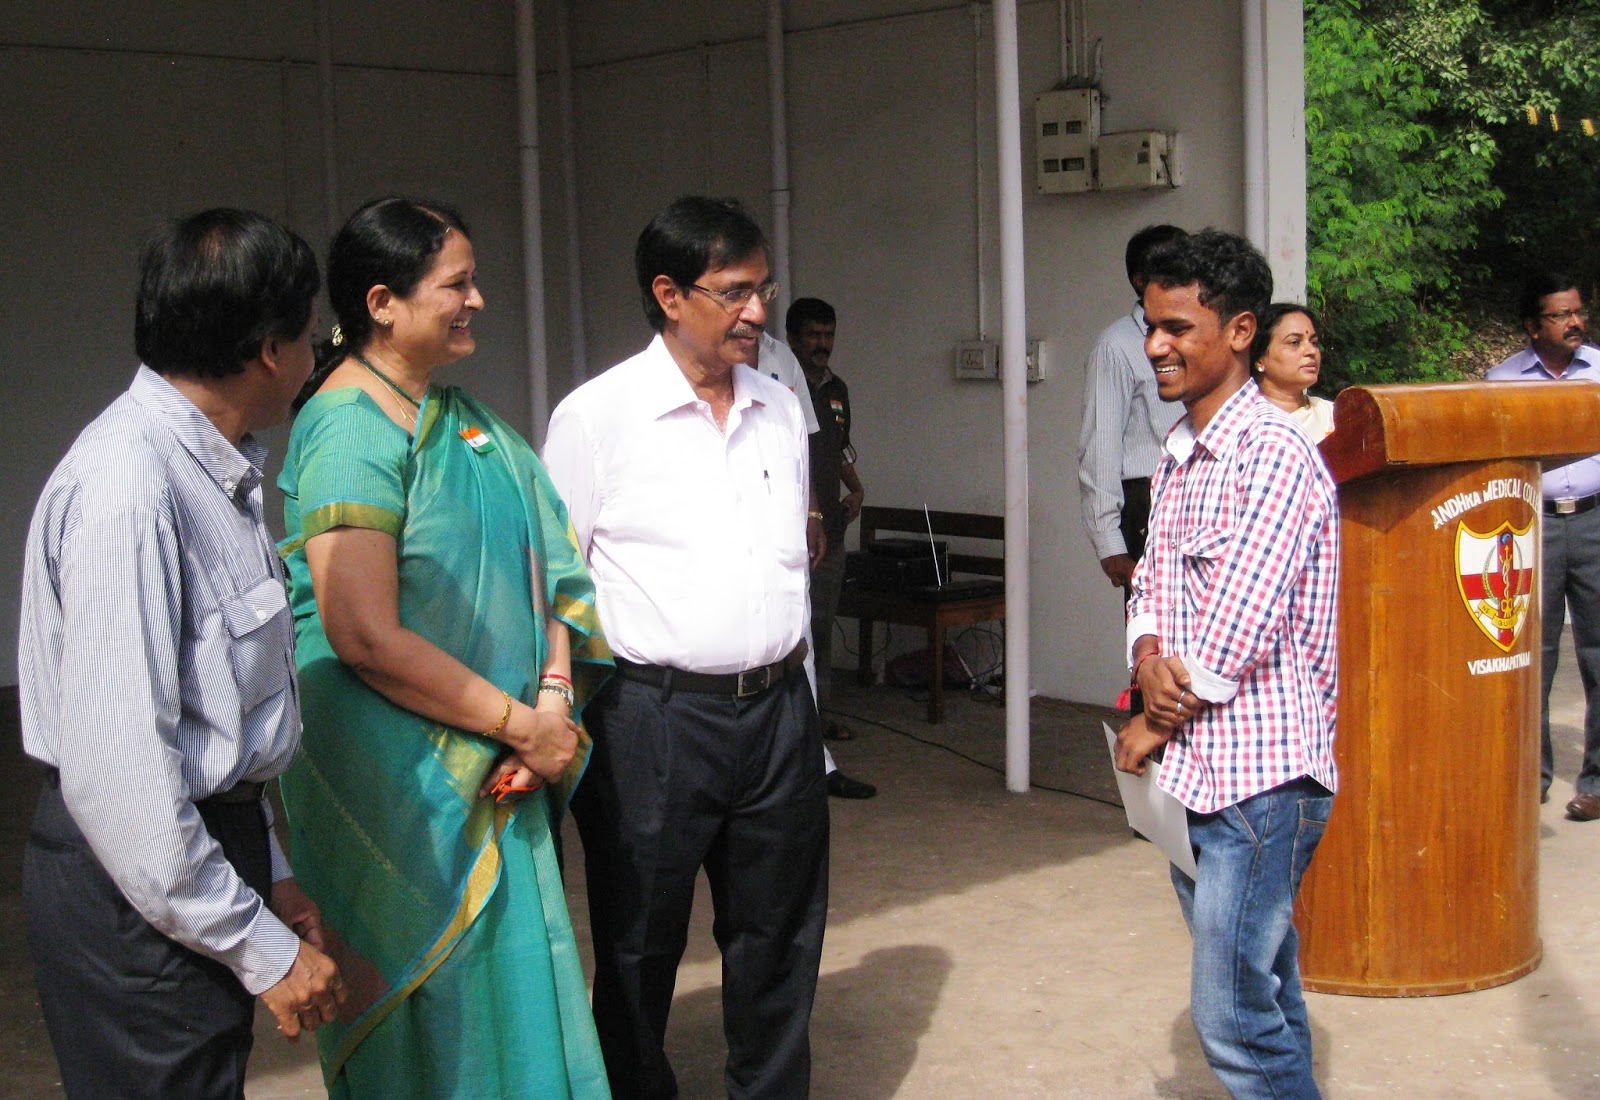 independence day india 2012 essay contest